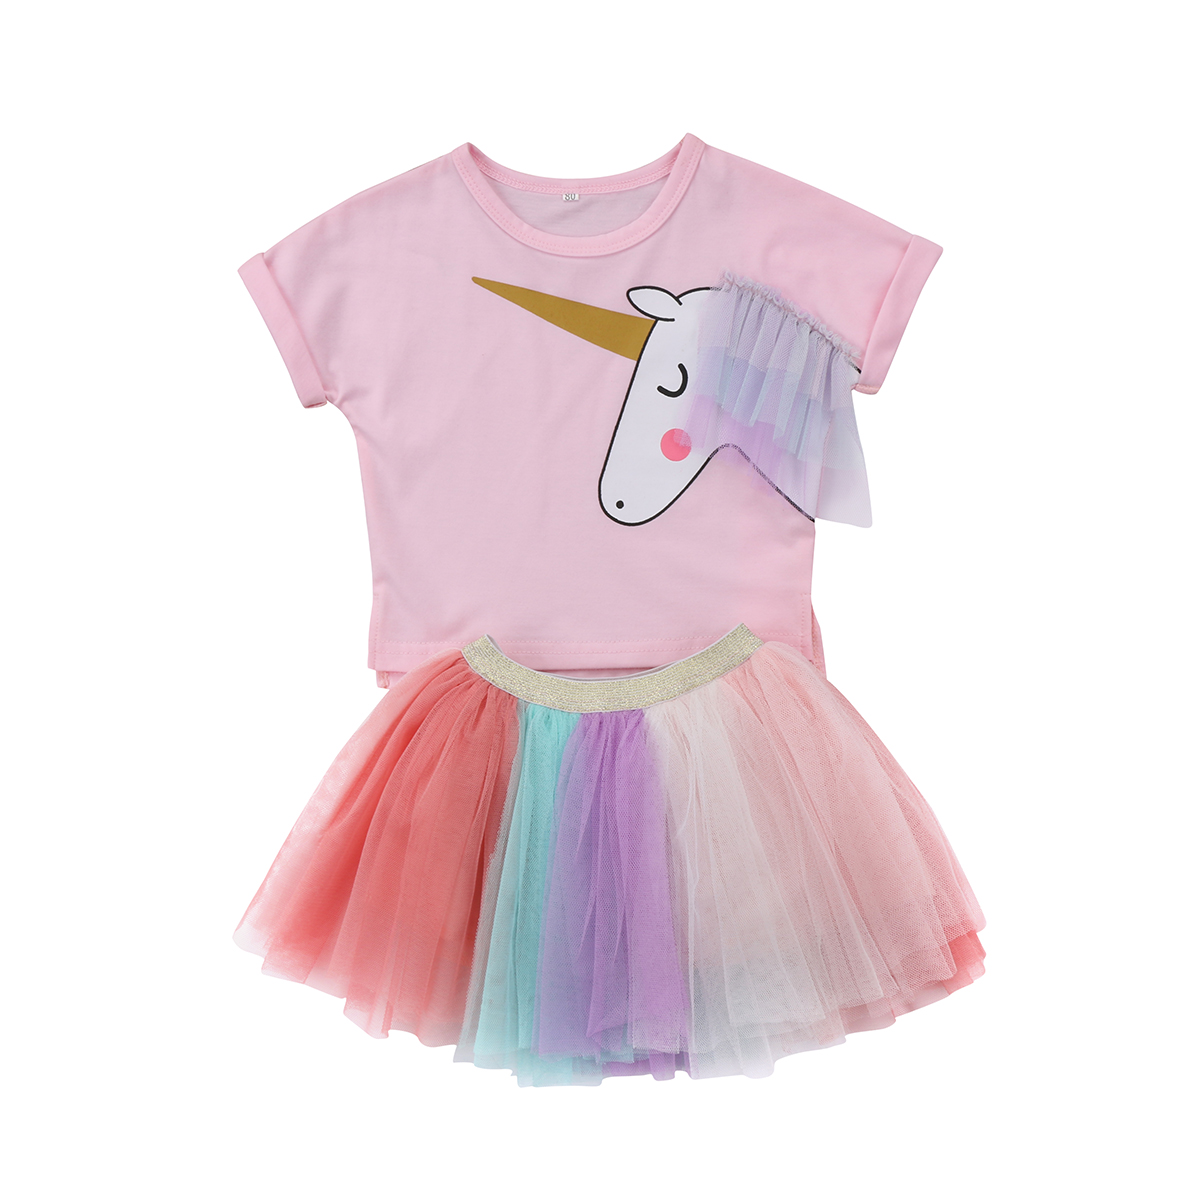 Kids Baby Girls Printed Top T-shirt +Lace Tutu Skirt Outfits Set Clothes Summer